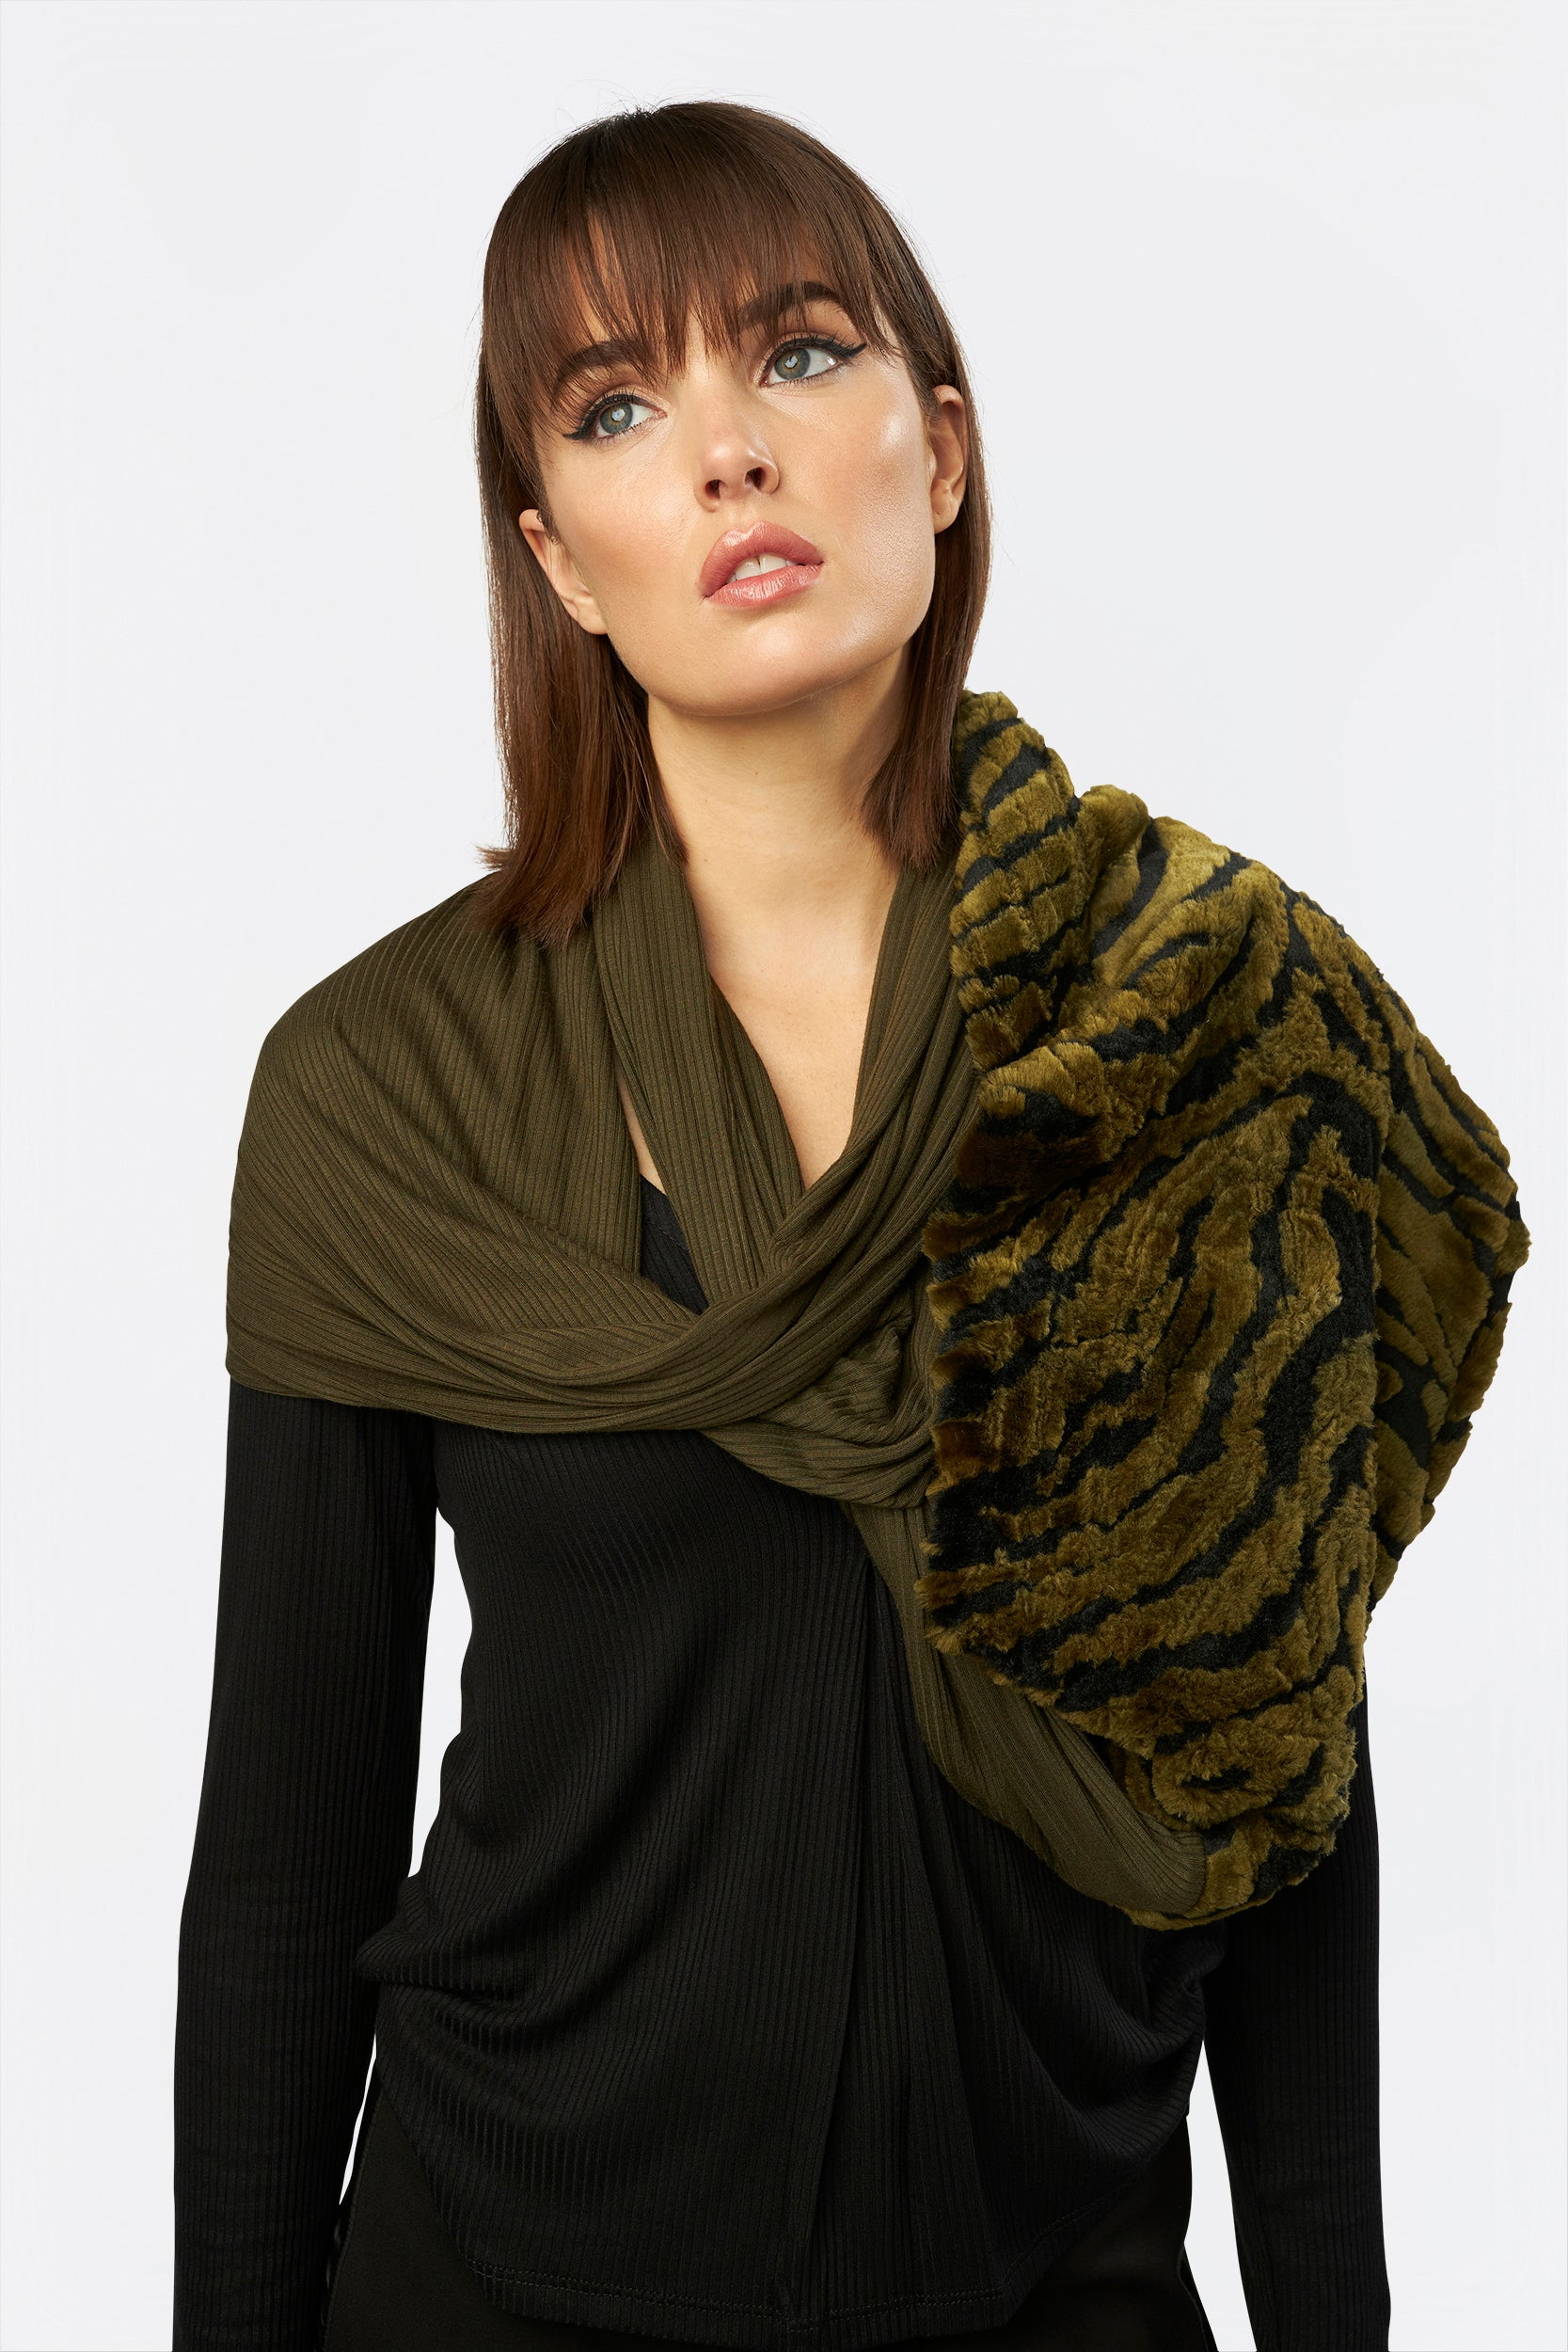 The Eternity Shrug by INLARKIN in olive zebra blends comfortable knit and luxurious faux fur